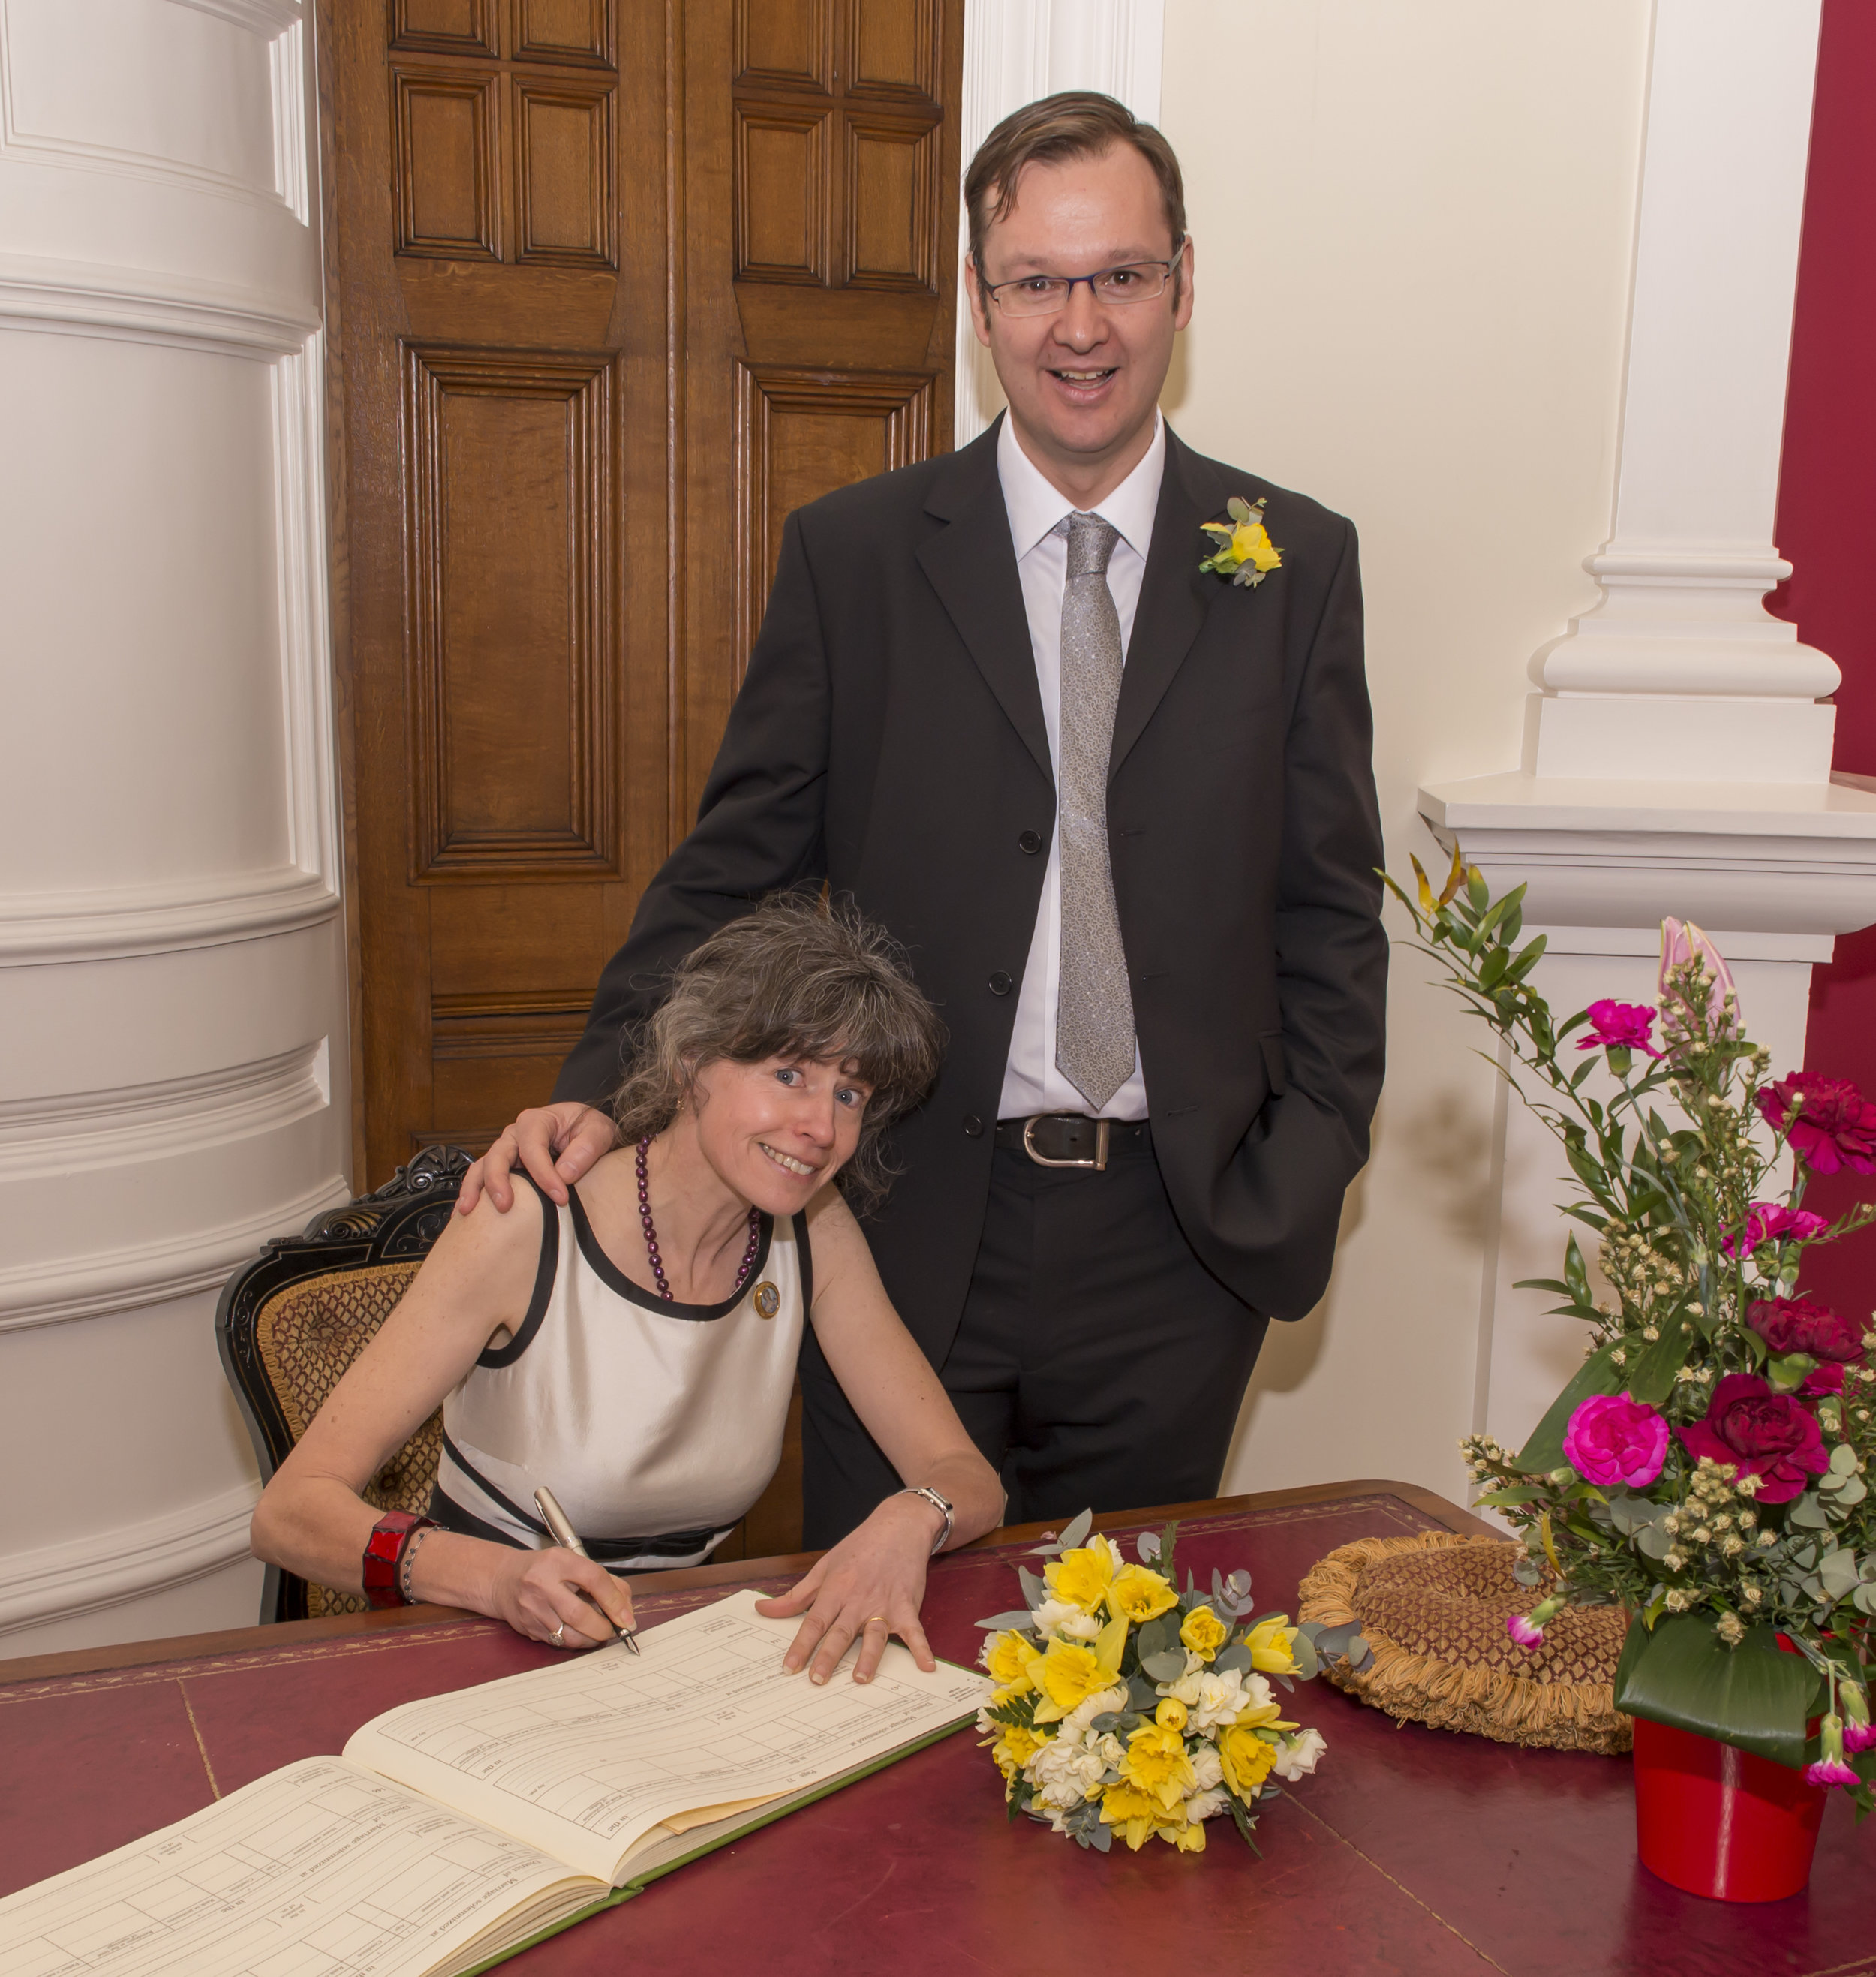 Wedding Photography - Hastings, Town Hall 1